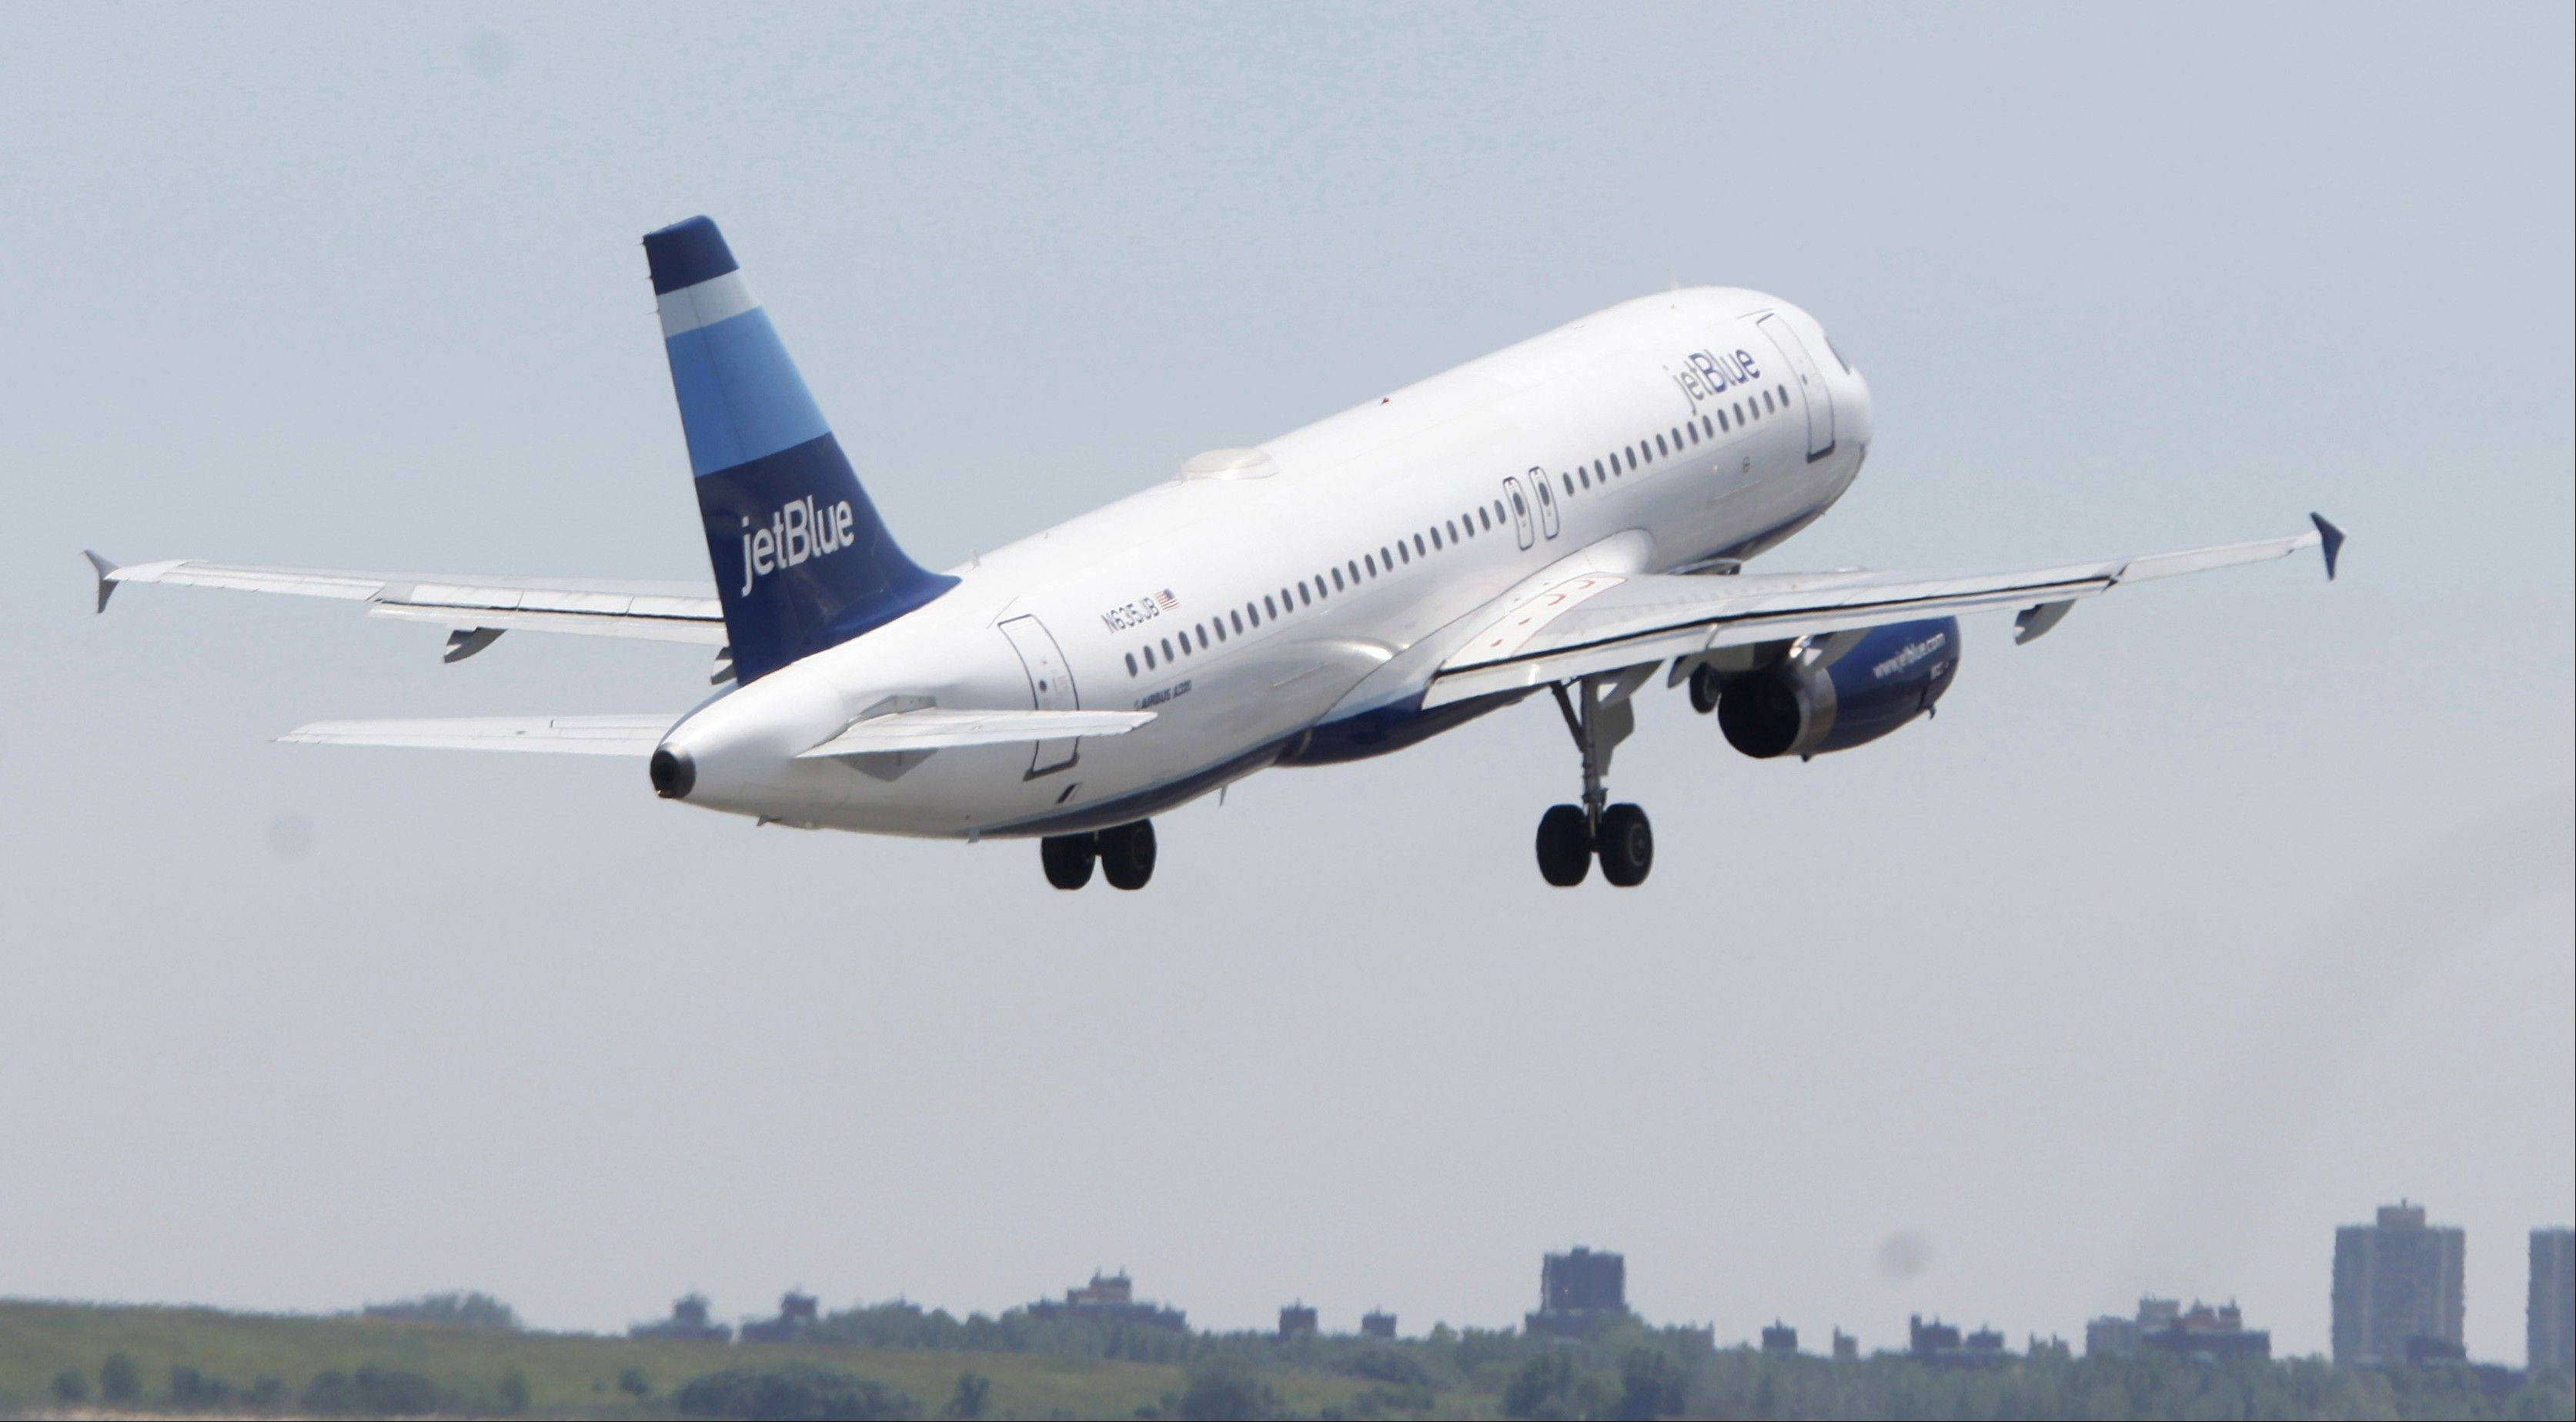 JetBlue Airways Corp., the carrier with the most domestic flights from New York's John F. Kennedy airport, said delays caused by a computer system outage will affect service throughout the day.